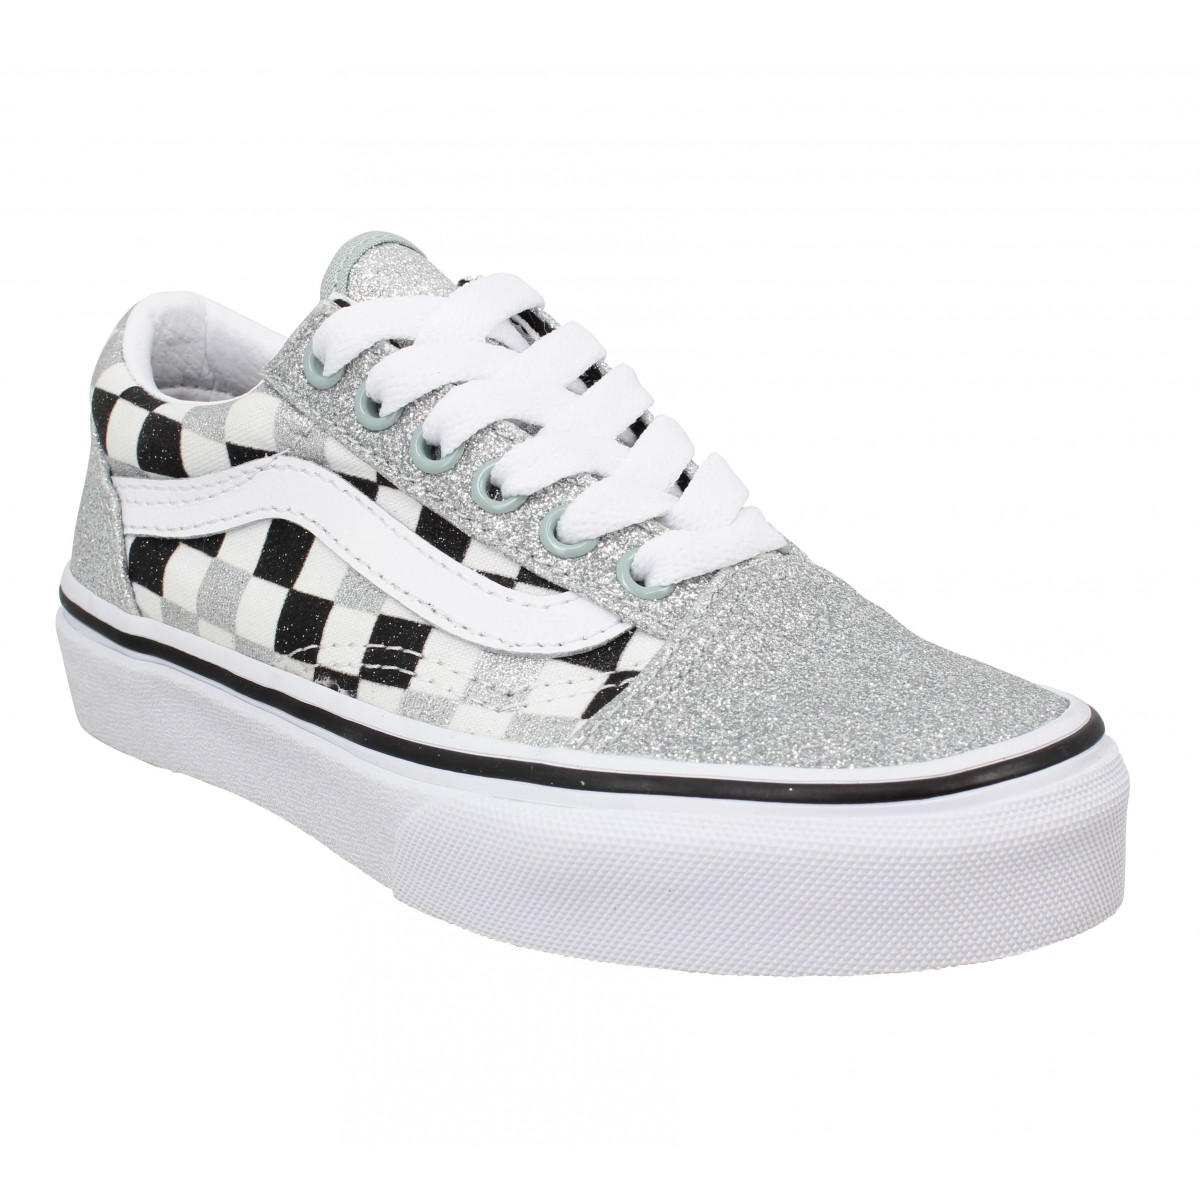 Baskets VANS Old Skool glitter Enfant Damier